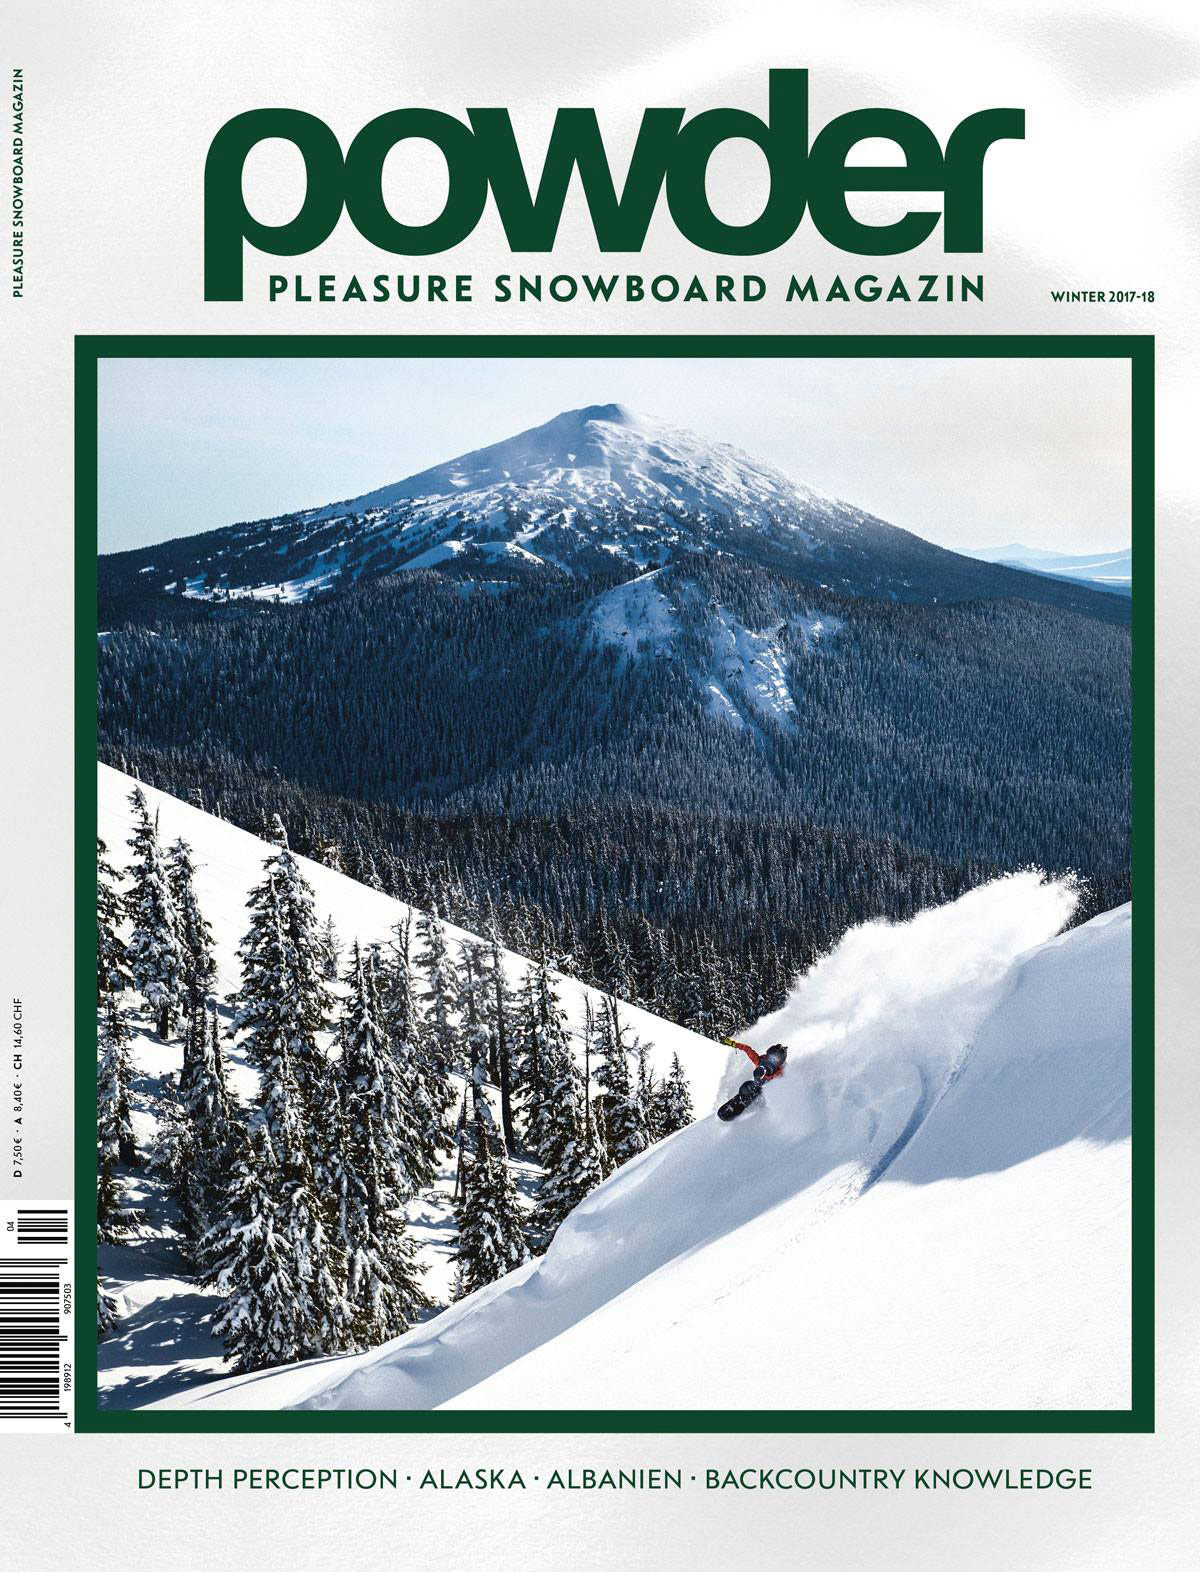 snowboard-winter-pleasure-magazine-josh-dirksen